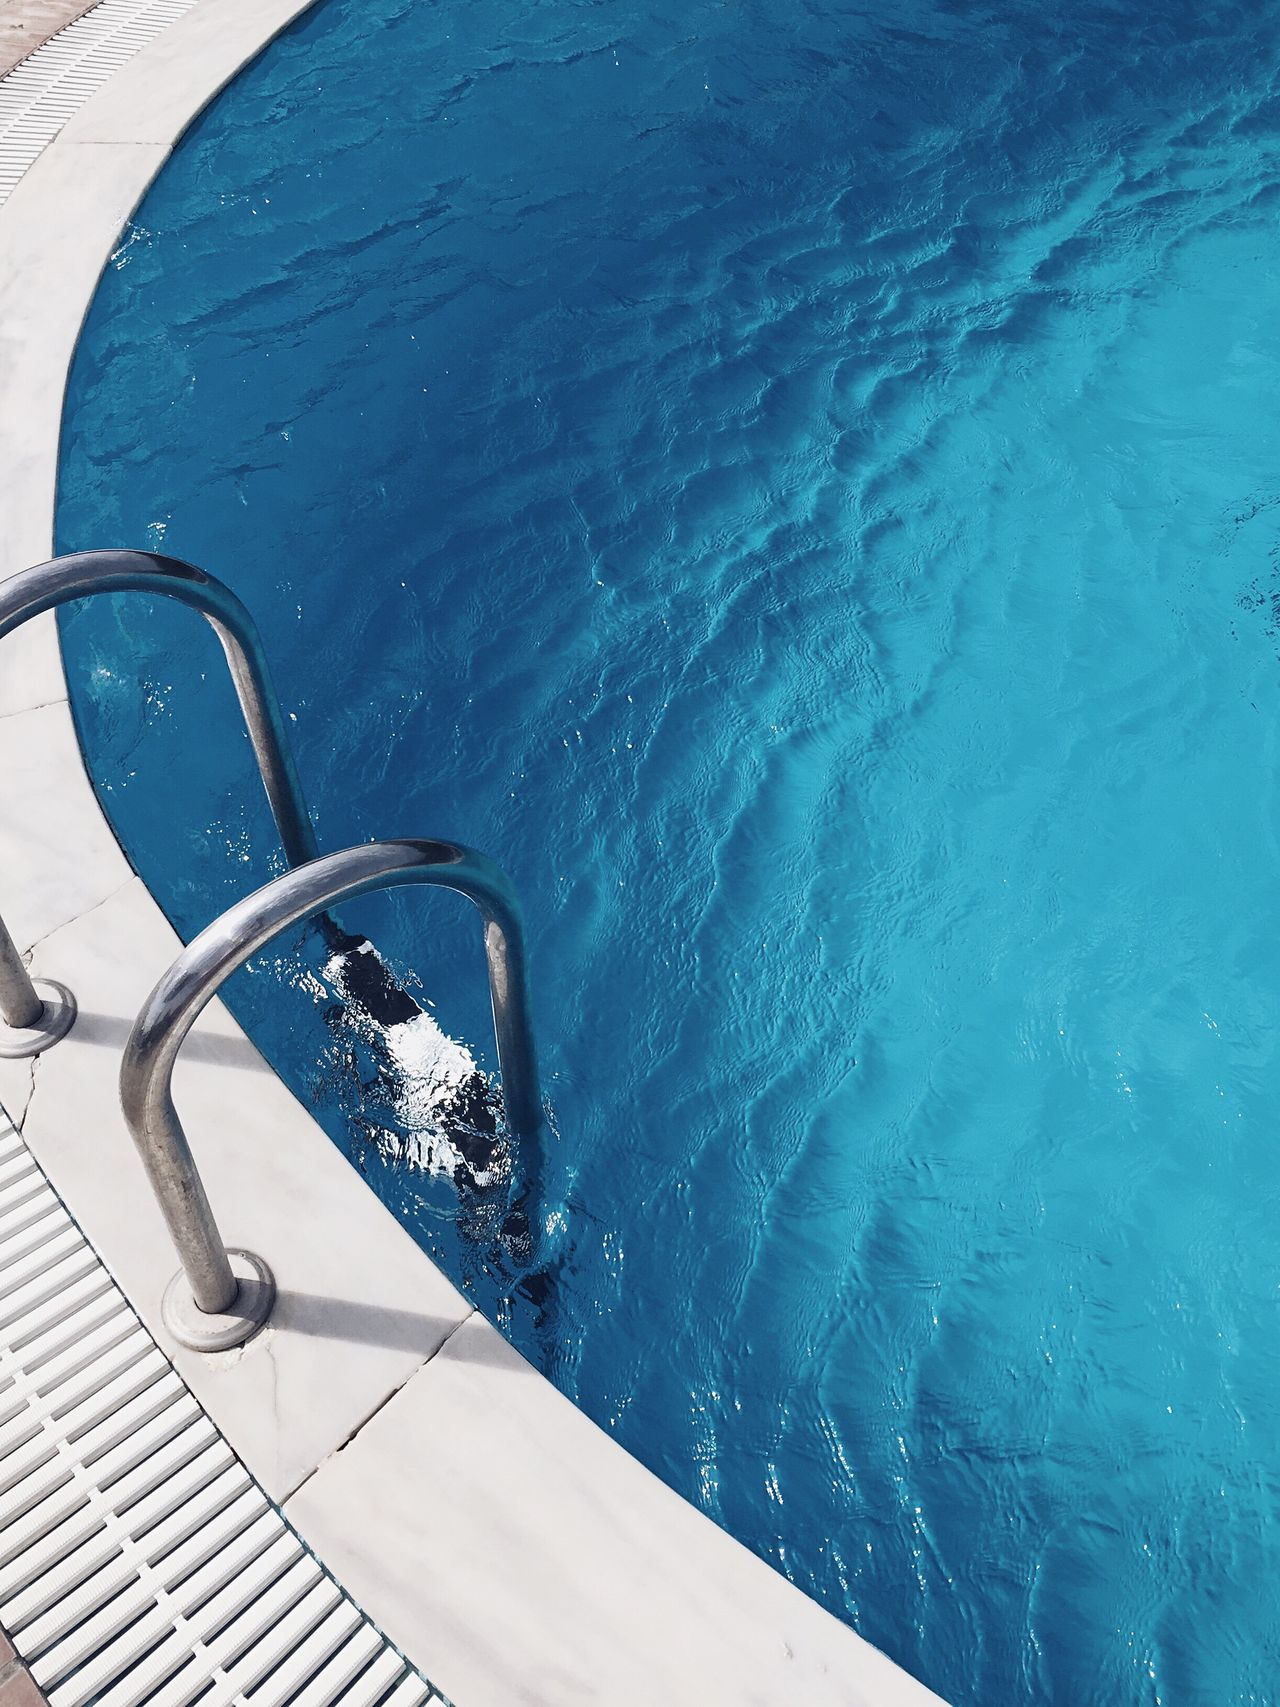 Live For The Story Swimming Pool Summer Water No People Sea Vacations Outdoors Sunlight Blue Day Nature Beauty In Nature Close-up TheWeekOnEyeEM EyeEm Best Shots Minimalism Minimal Minimalobsession Minimalist Minimalistic Minimalist Photography  Pool Poolside BYOPaper!